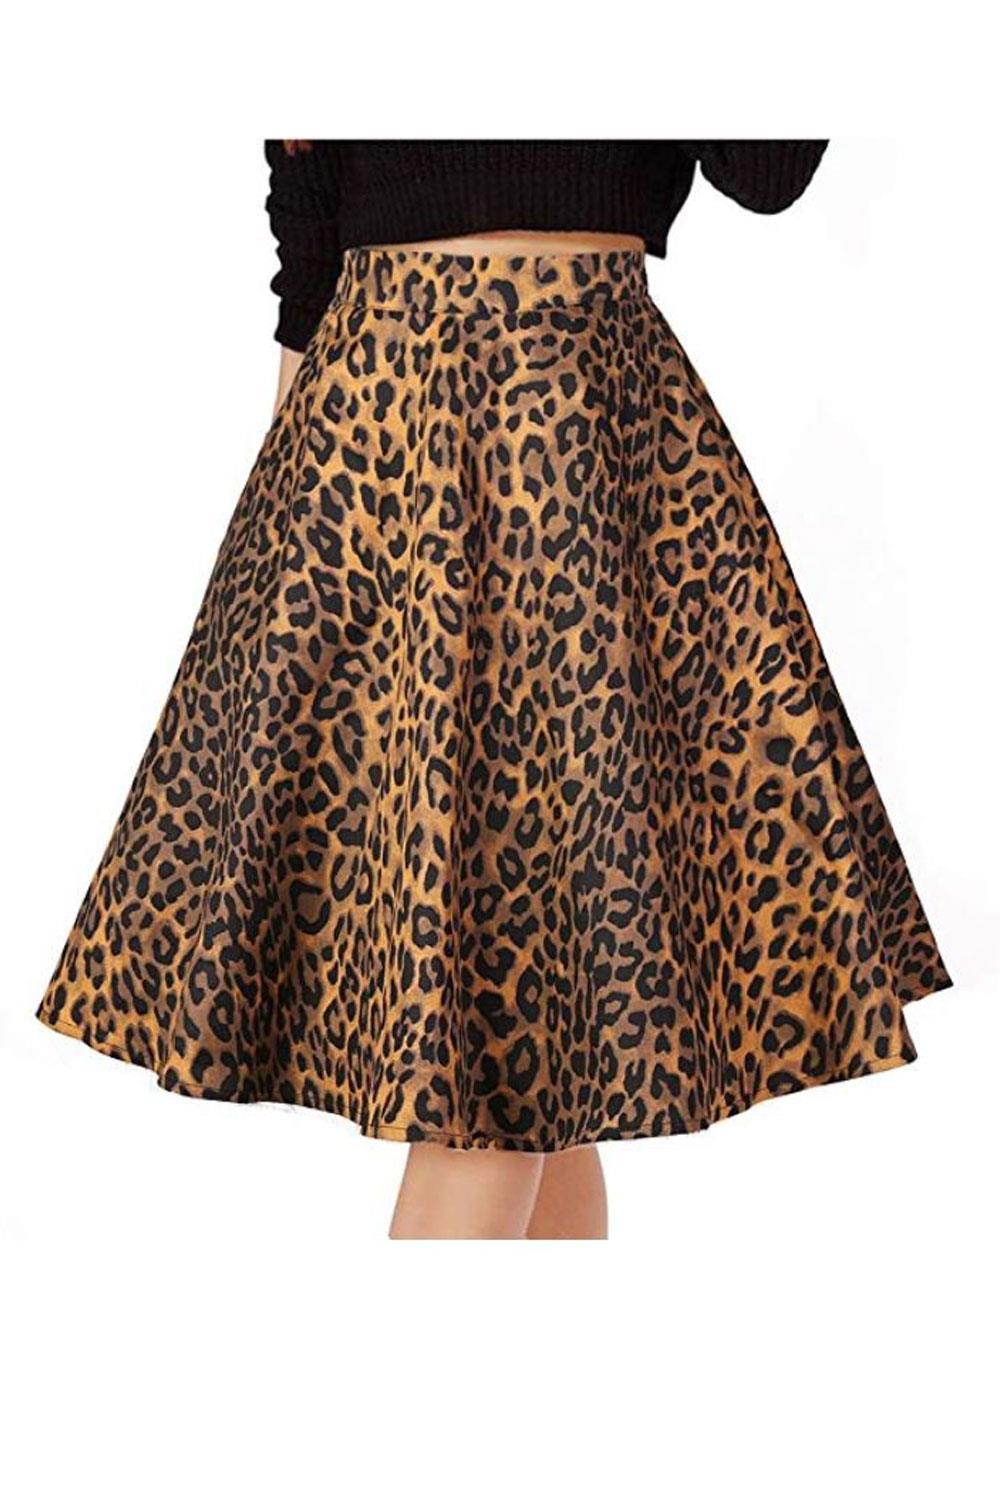 falda leopardo amazon Musever, 22€ aprox.